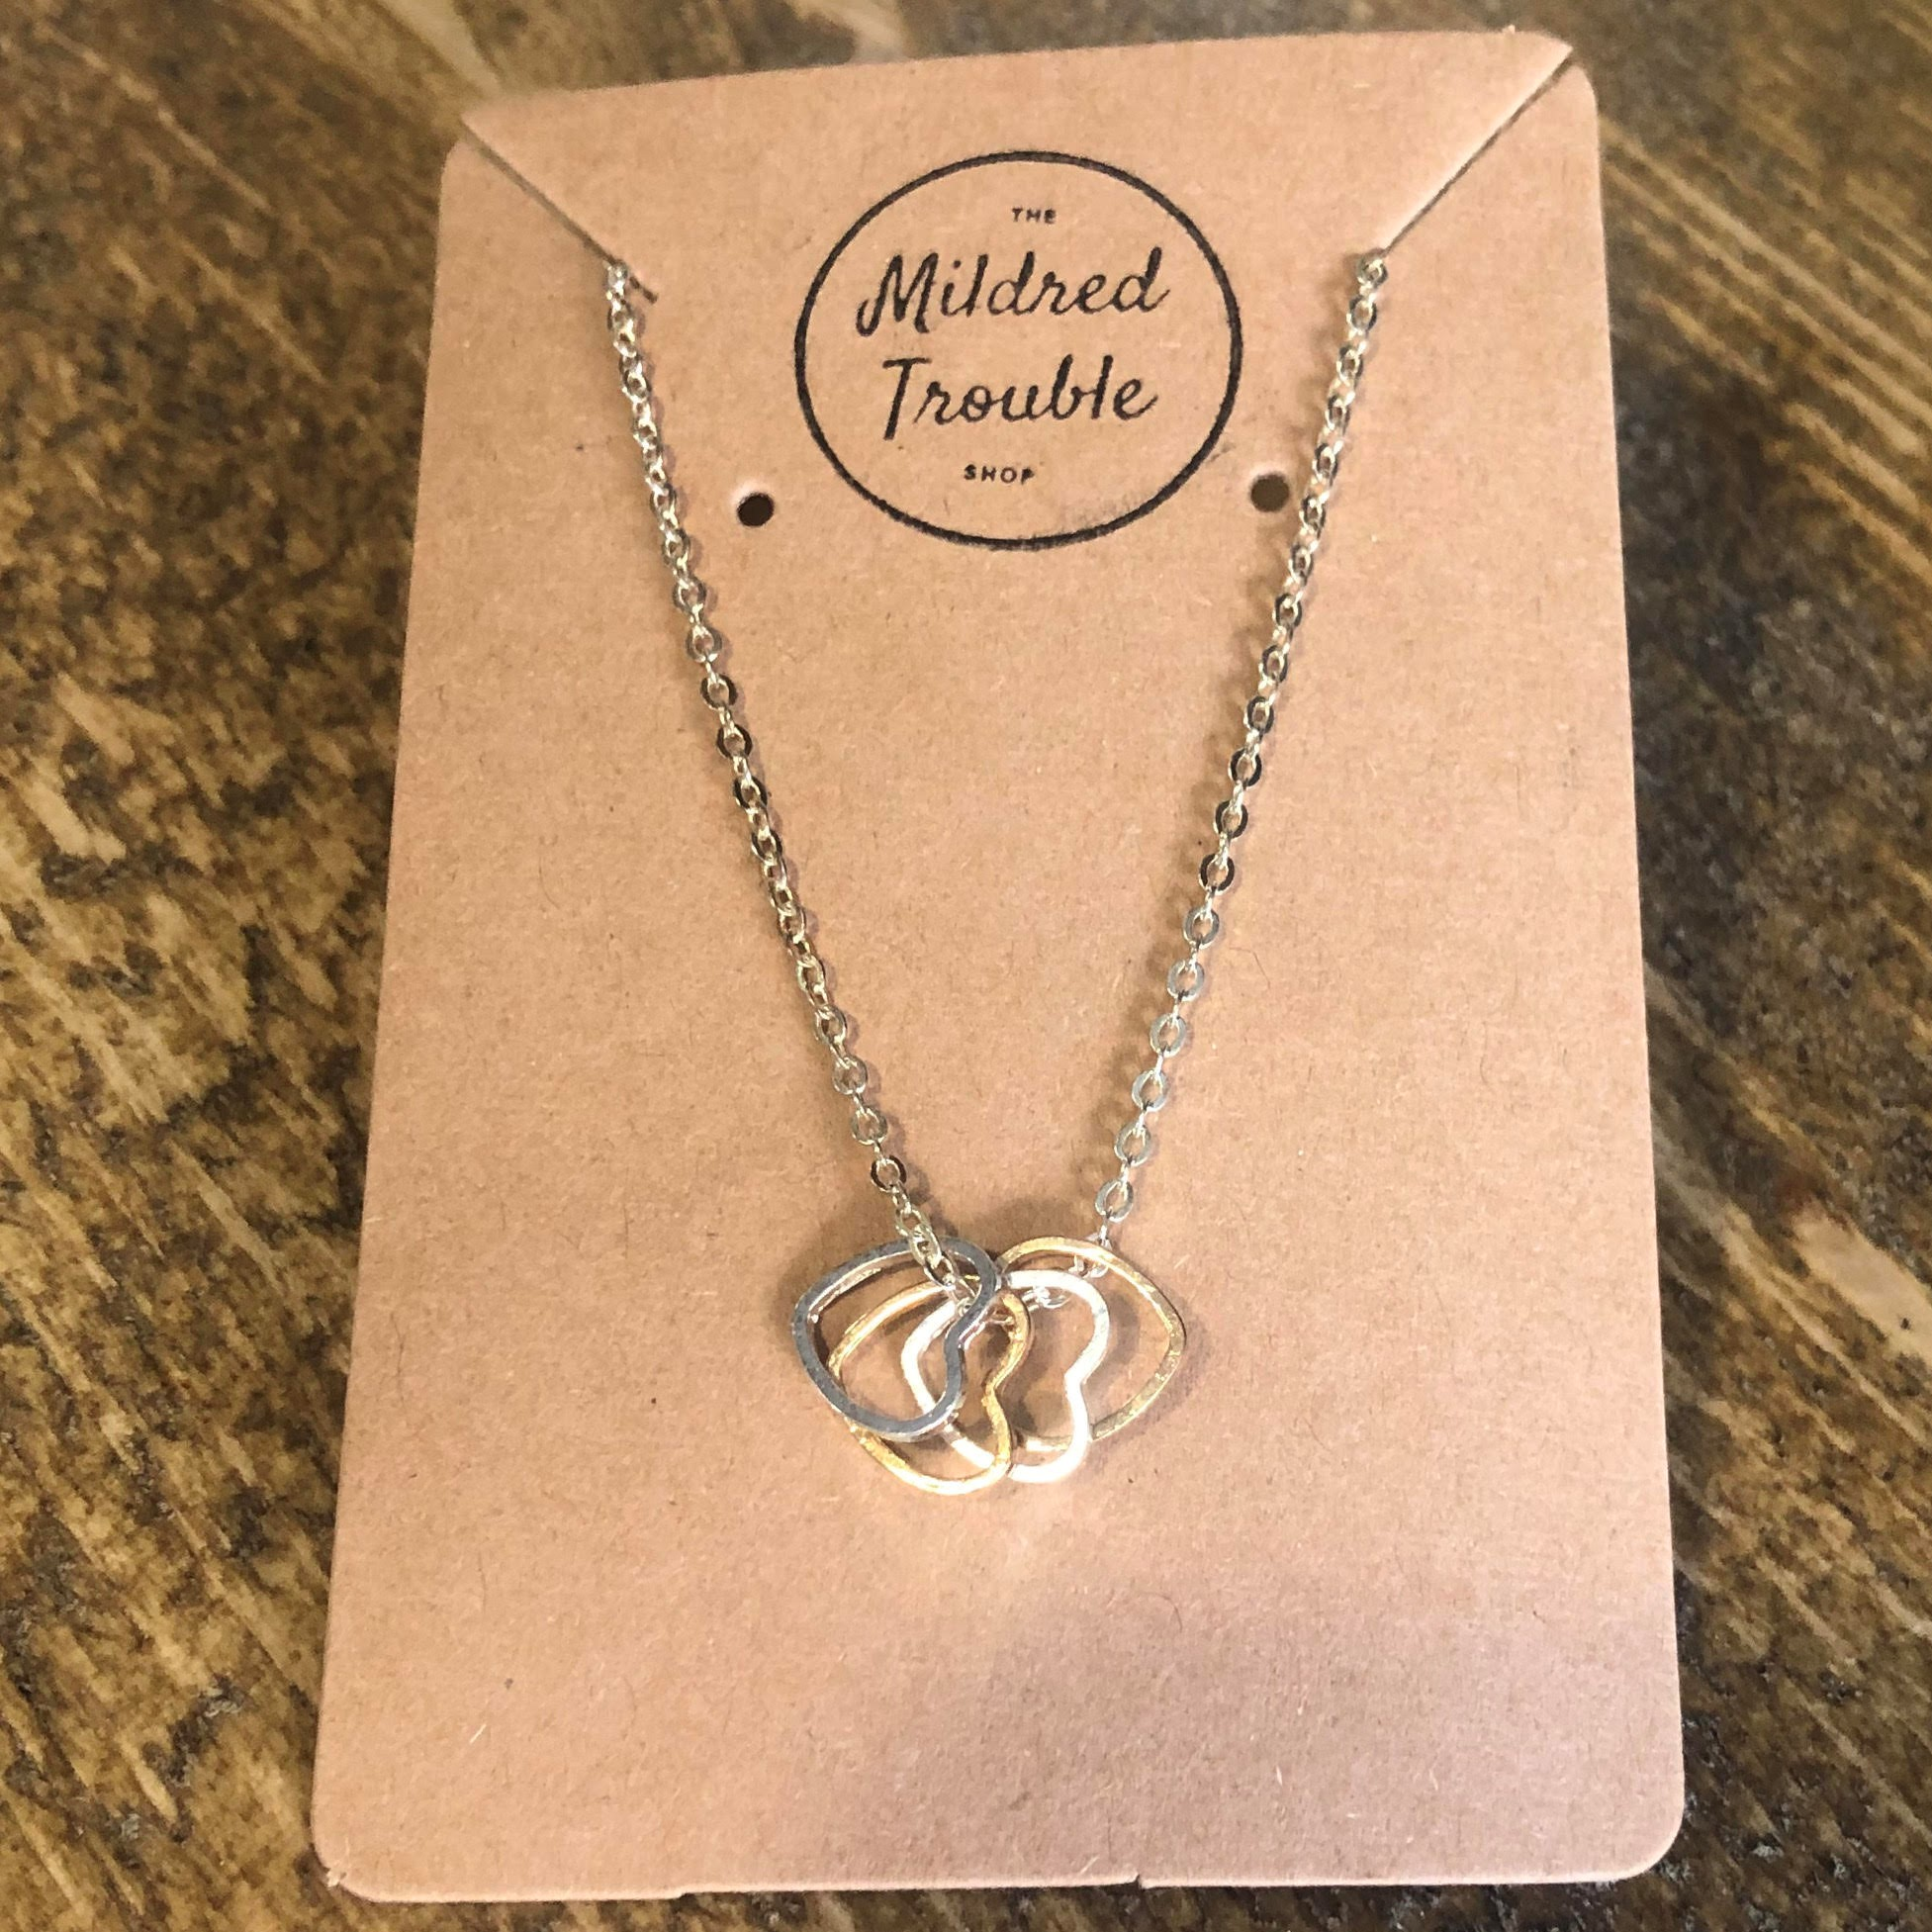 Necklaces by Mildred Trouble